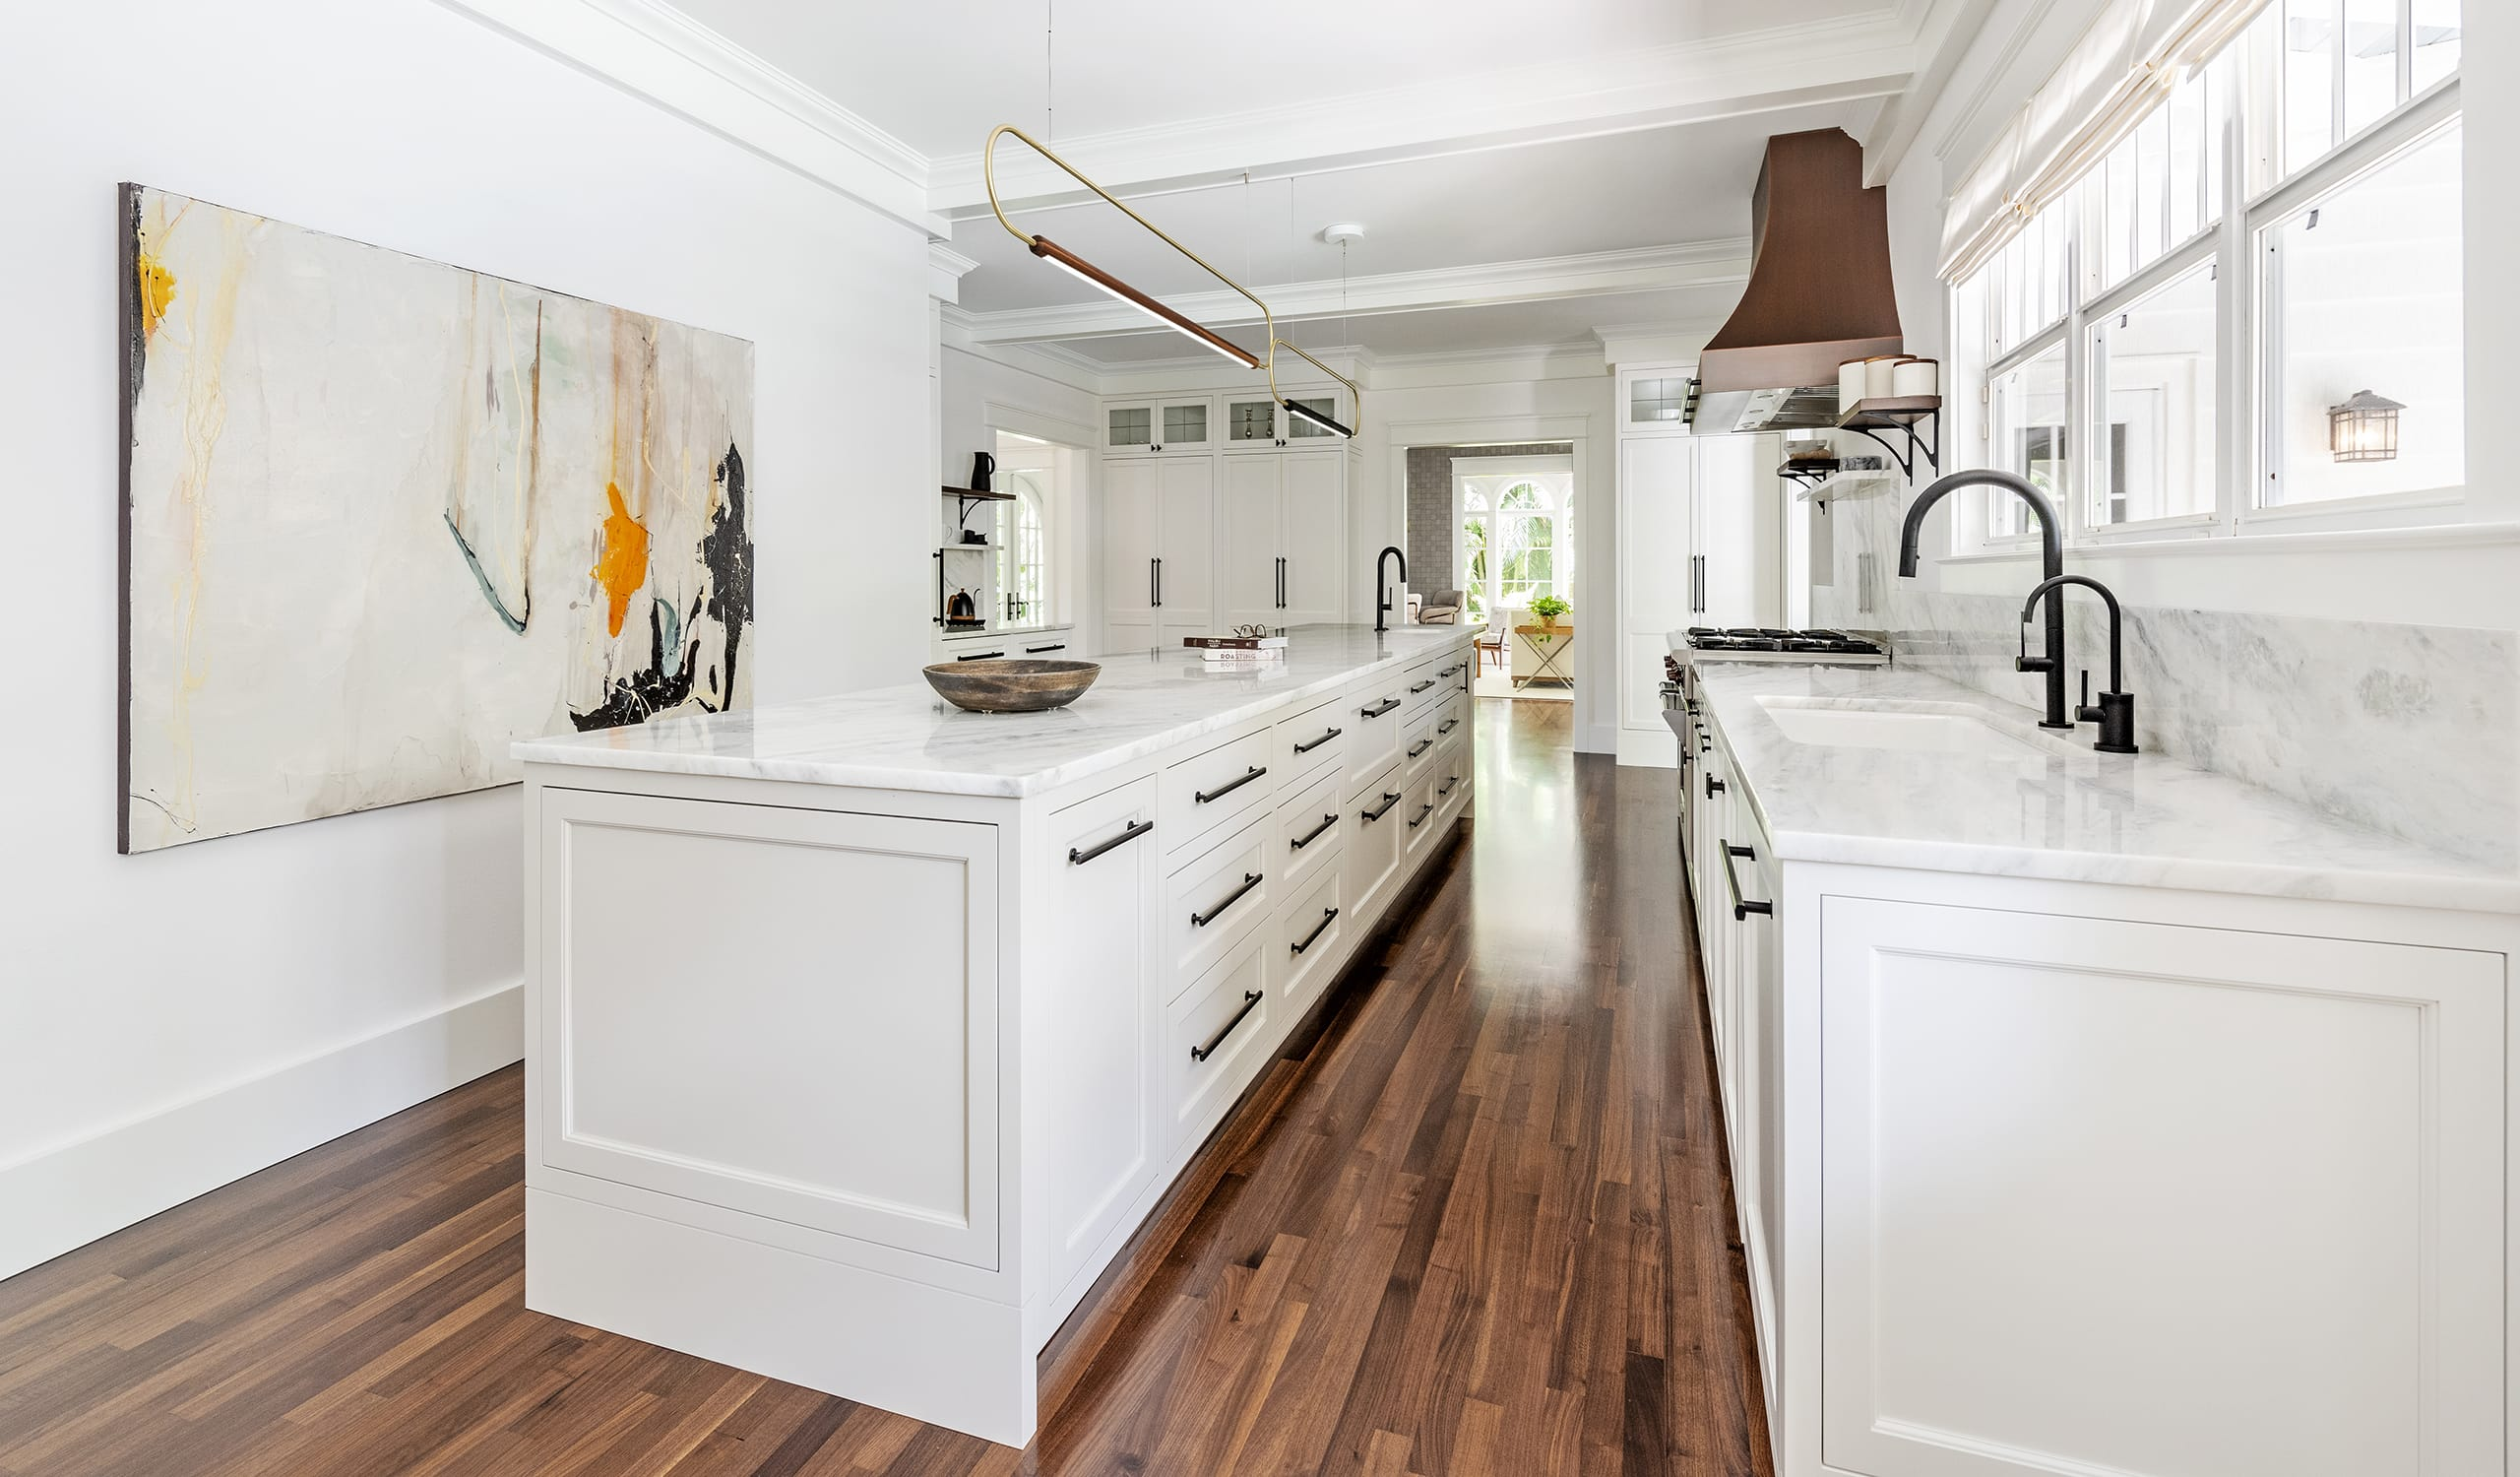 White Cabinets Marble Counter Kitchen Top Wood Floors